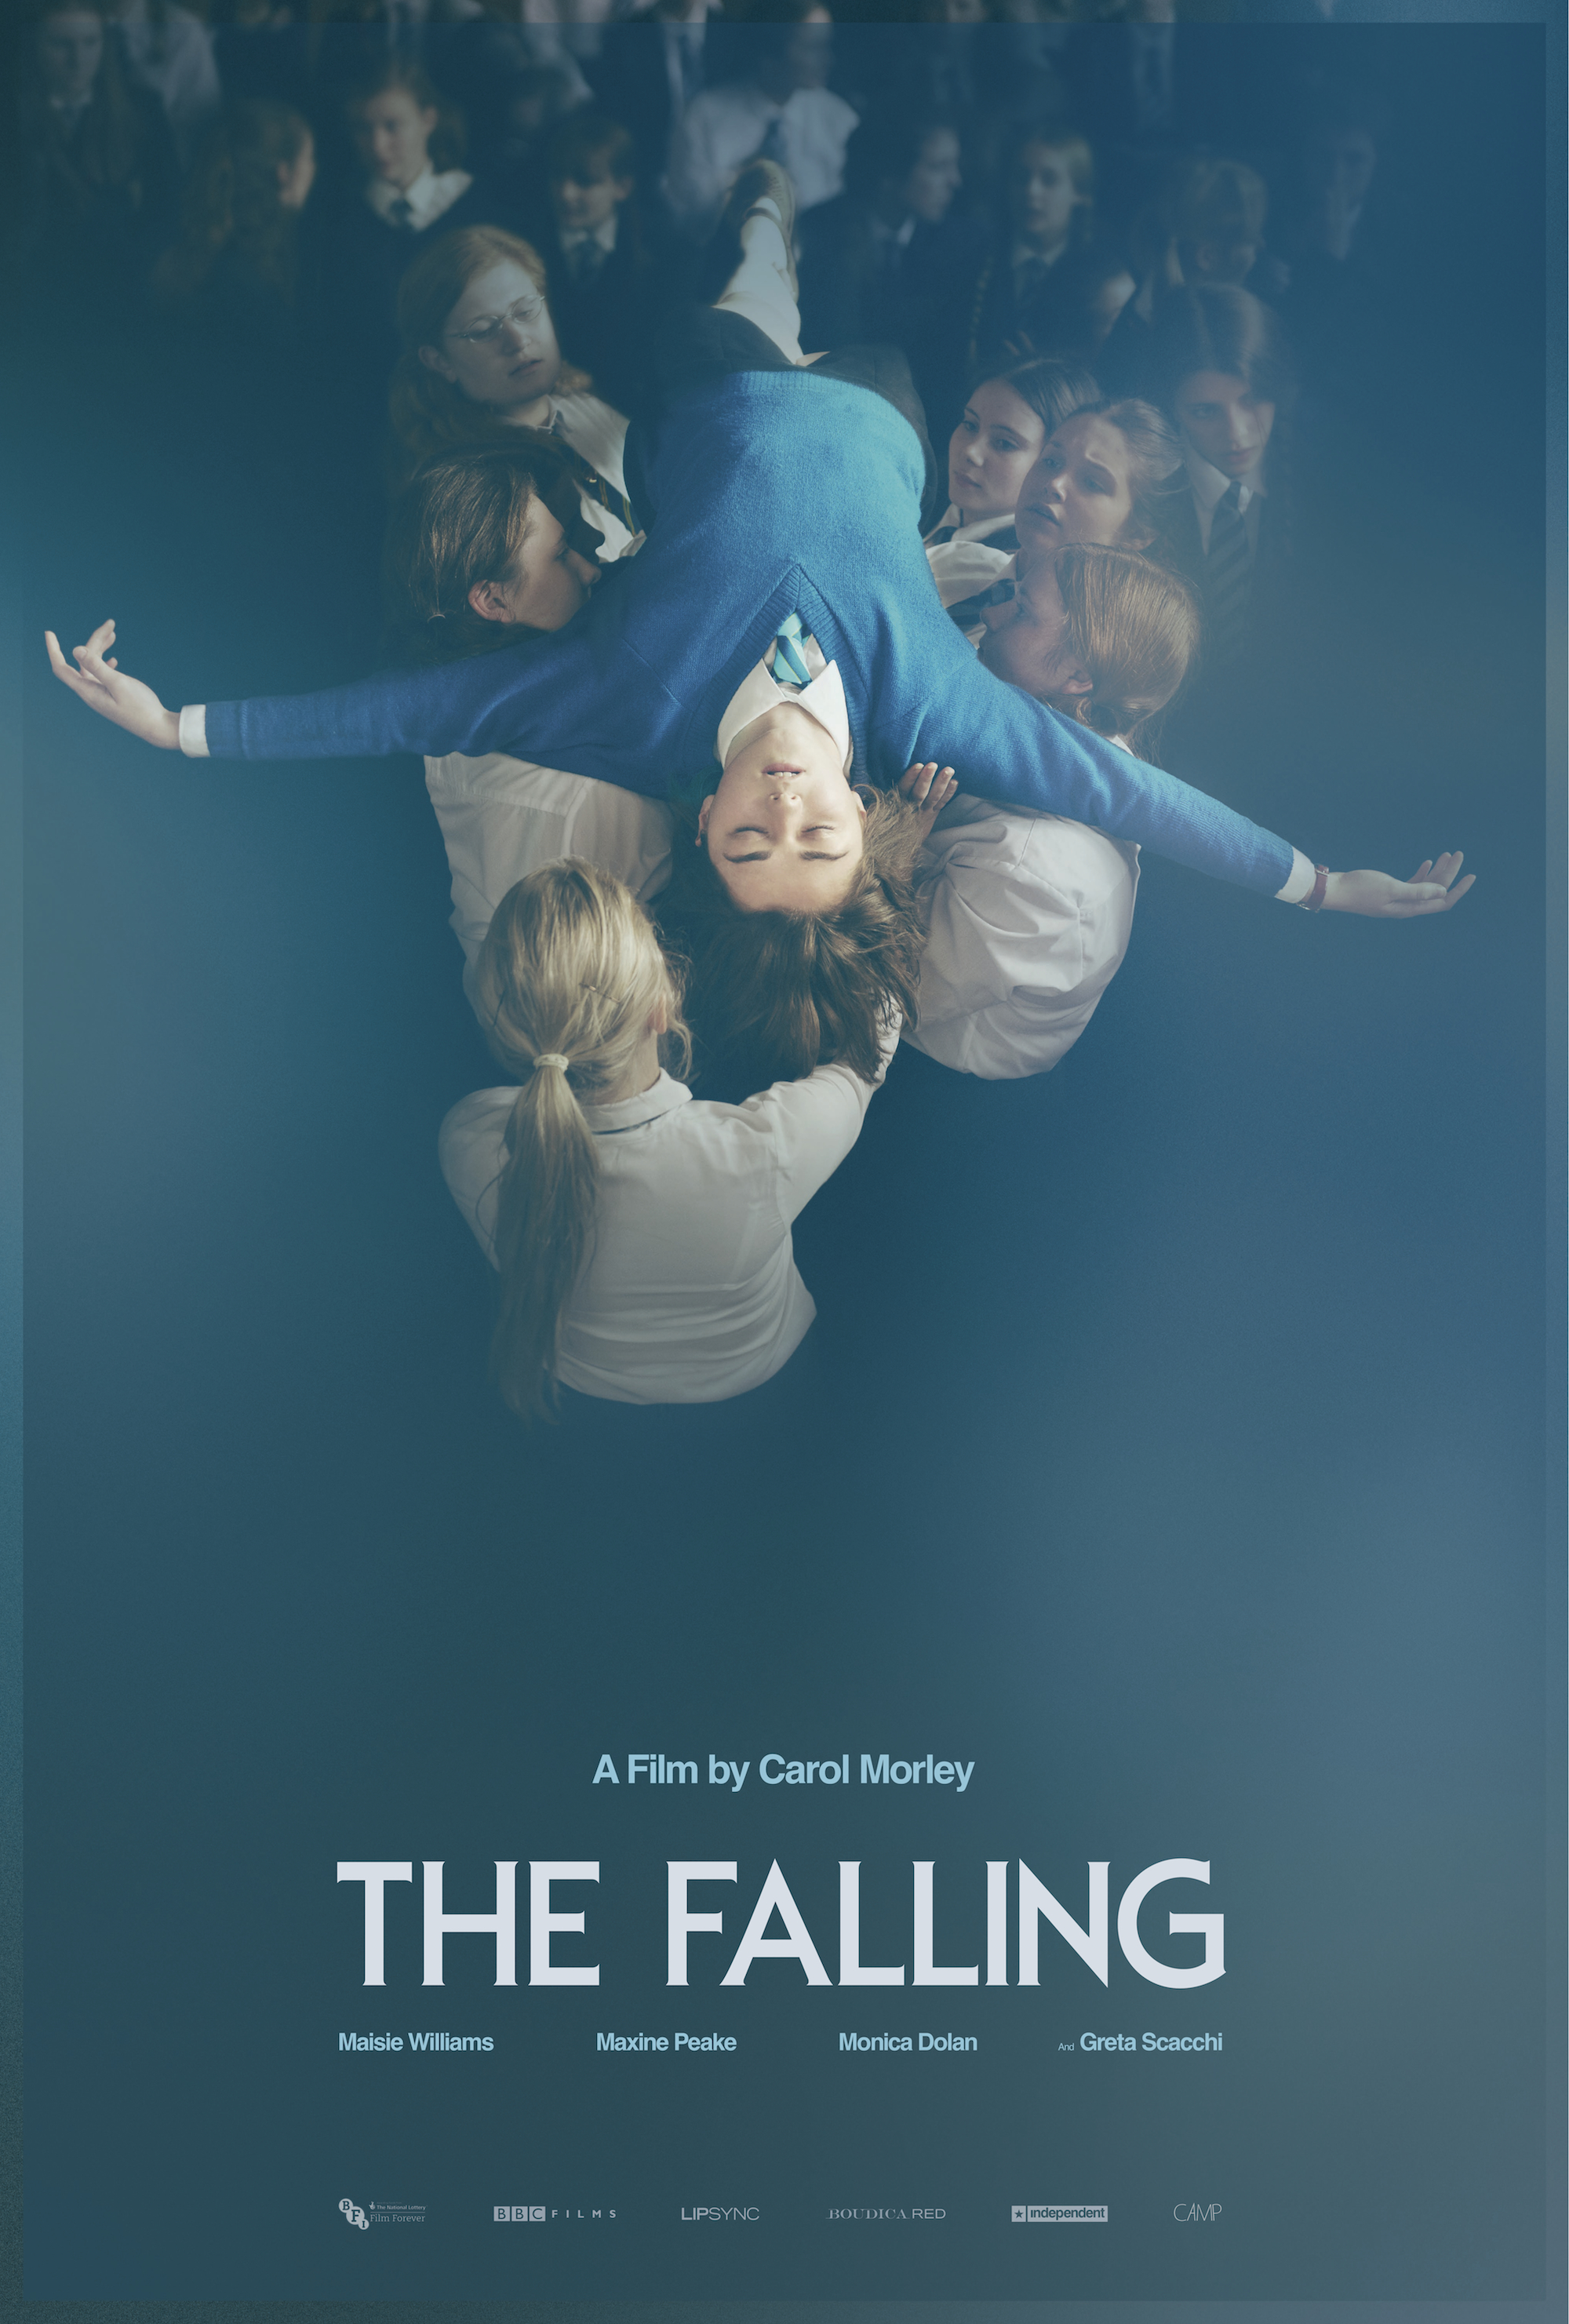 Maisie Williams The Falling